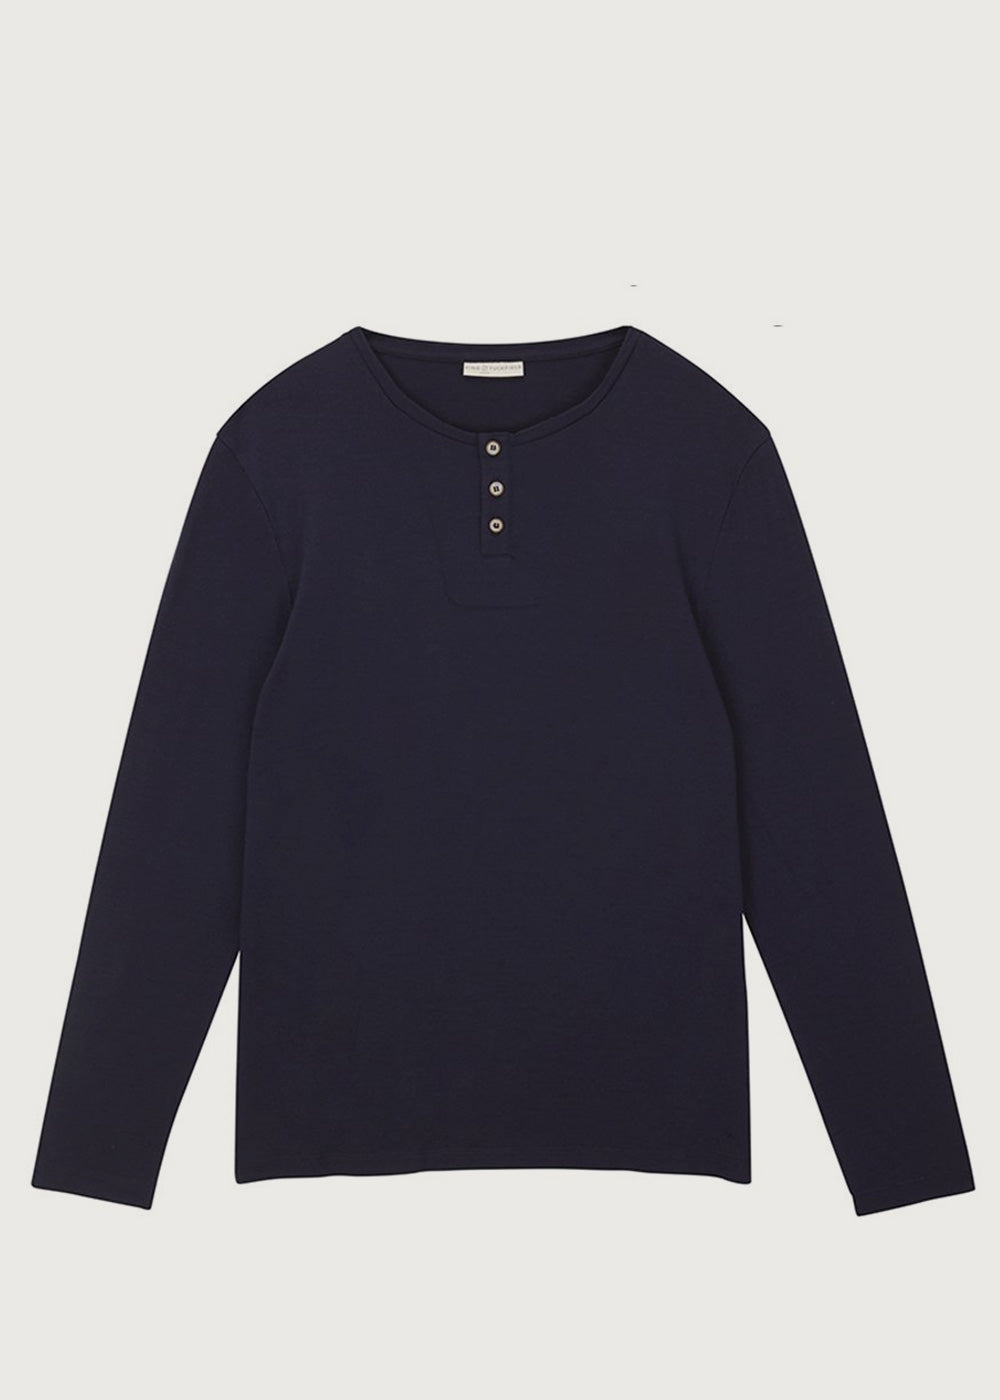 Merino Navy Long Sleeve Grandad T-Shirt - King & Tuckfield